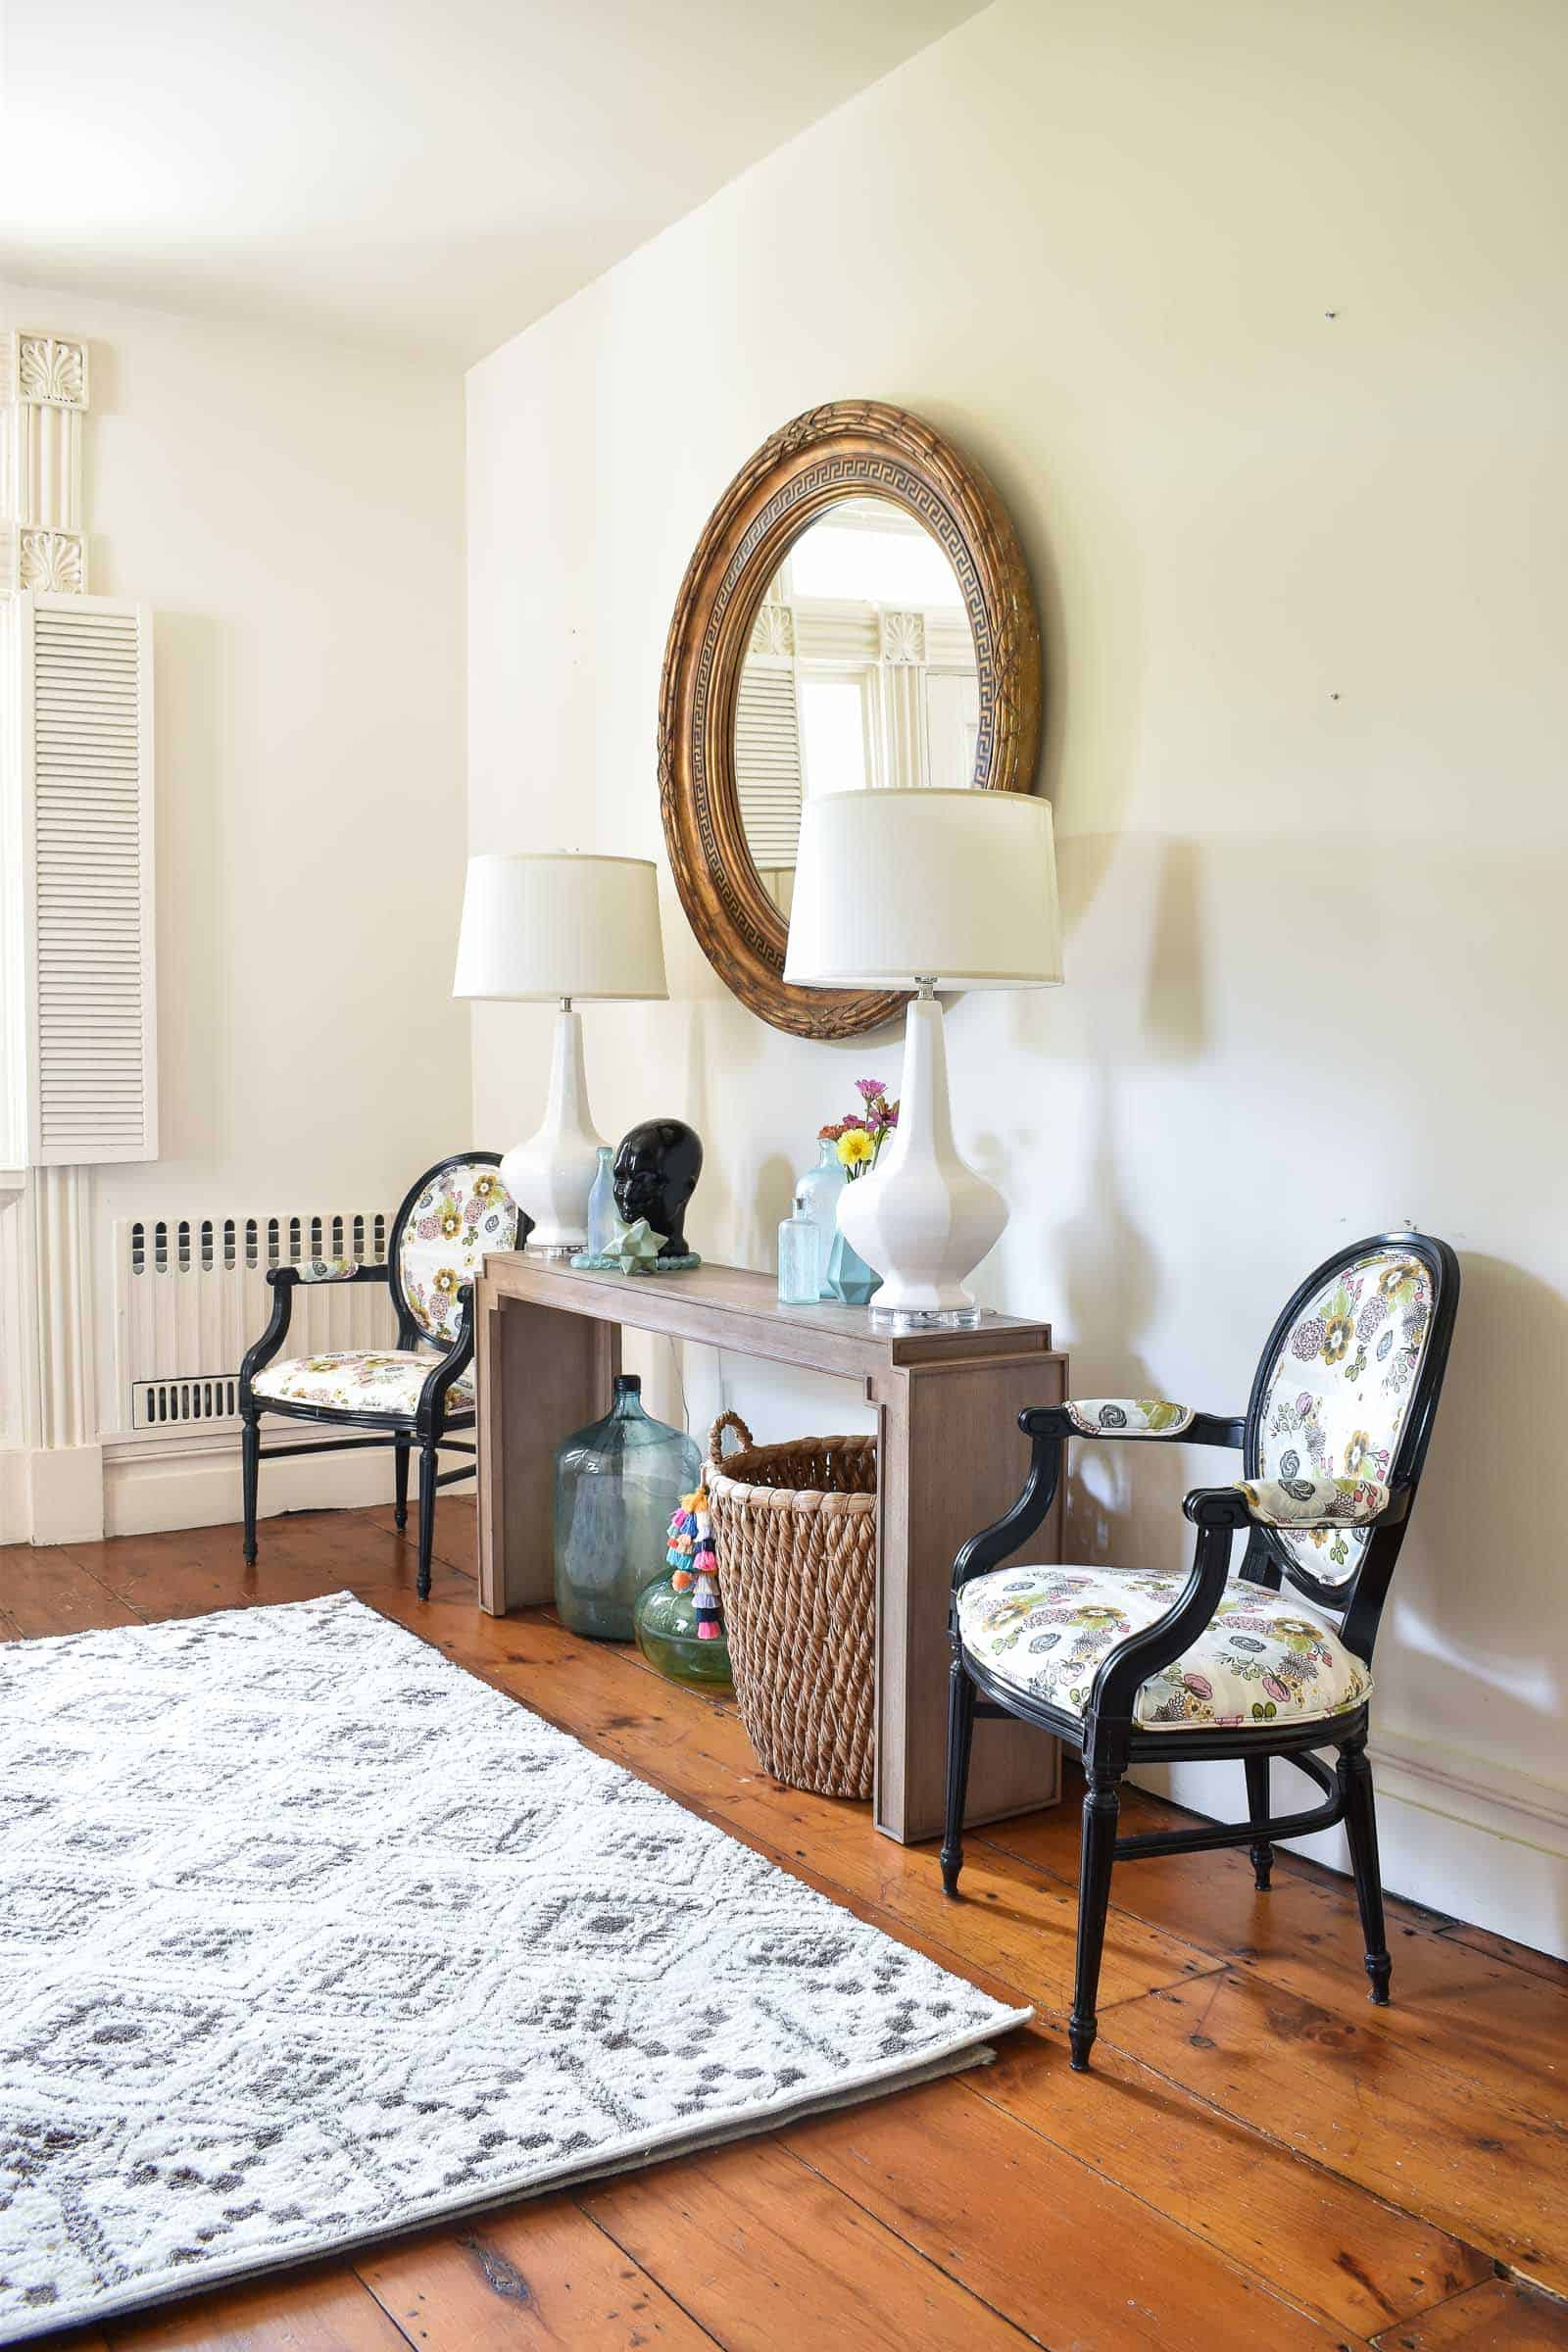 redesigned foyer space with bassett furniture